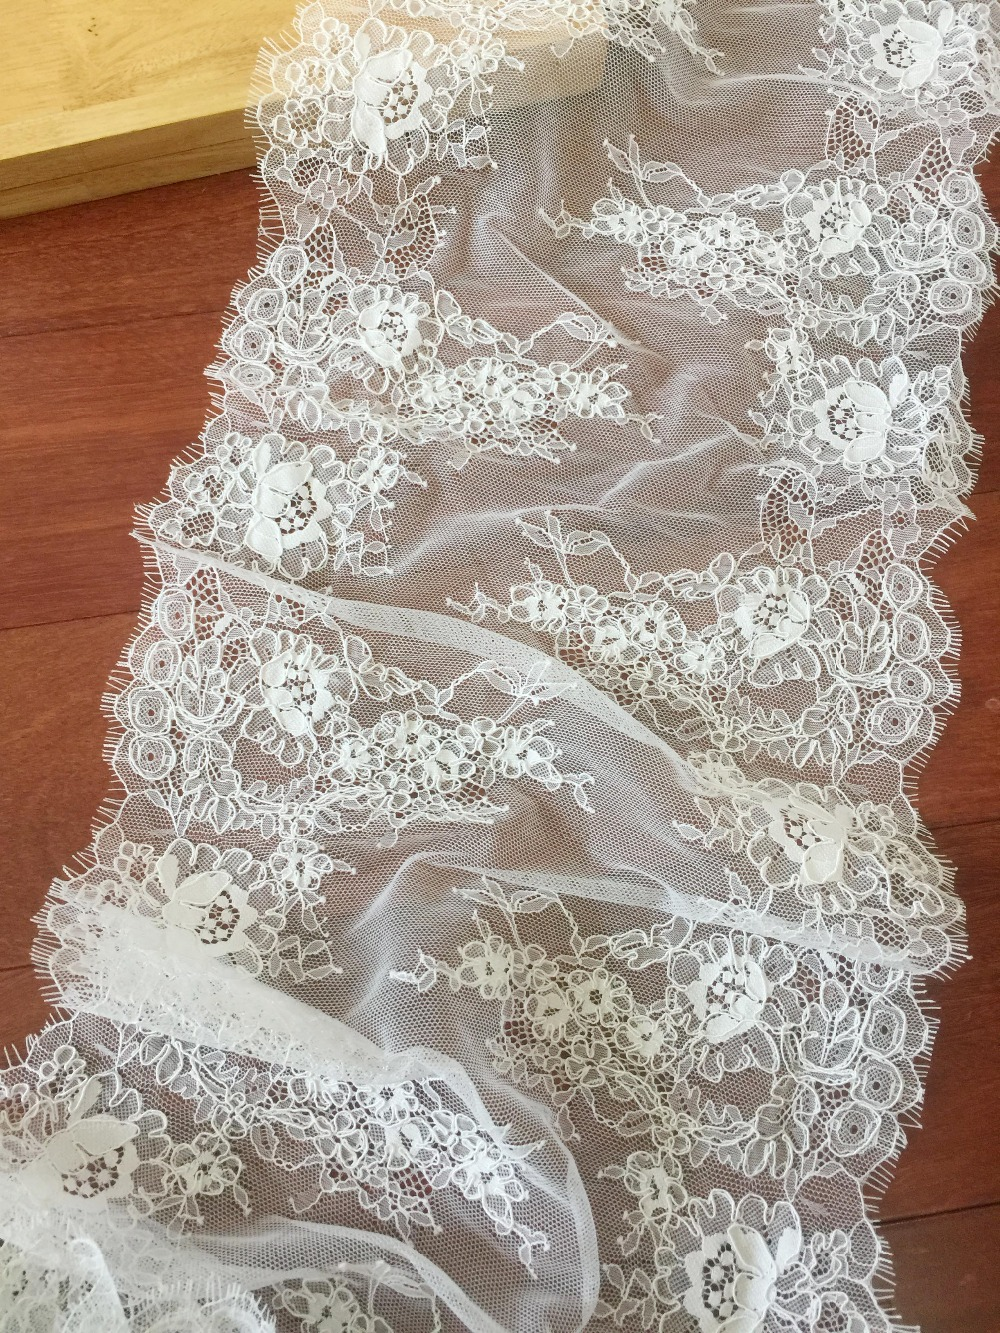 Exquisite French Alencon Lace Fabric in Ivory for Wedding, Gowns, Bridal Veils, Costumes Design image